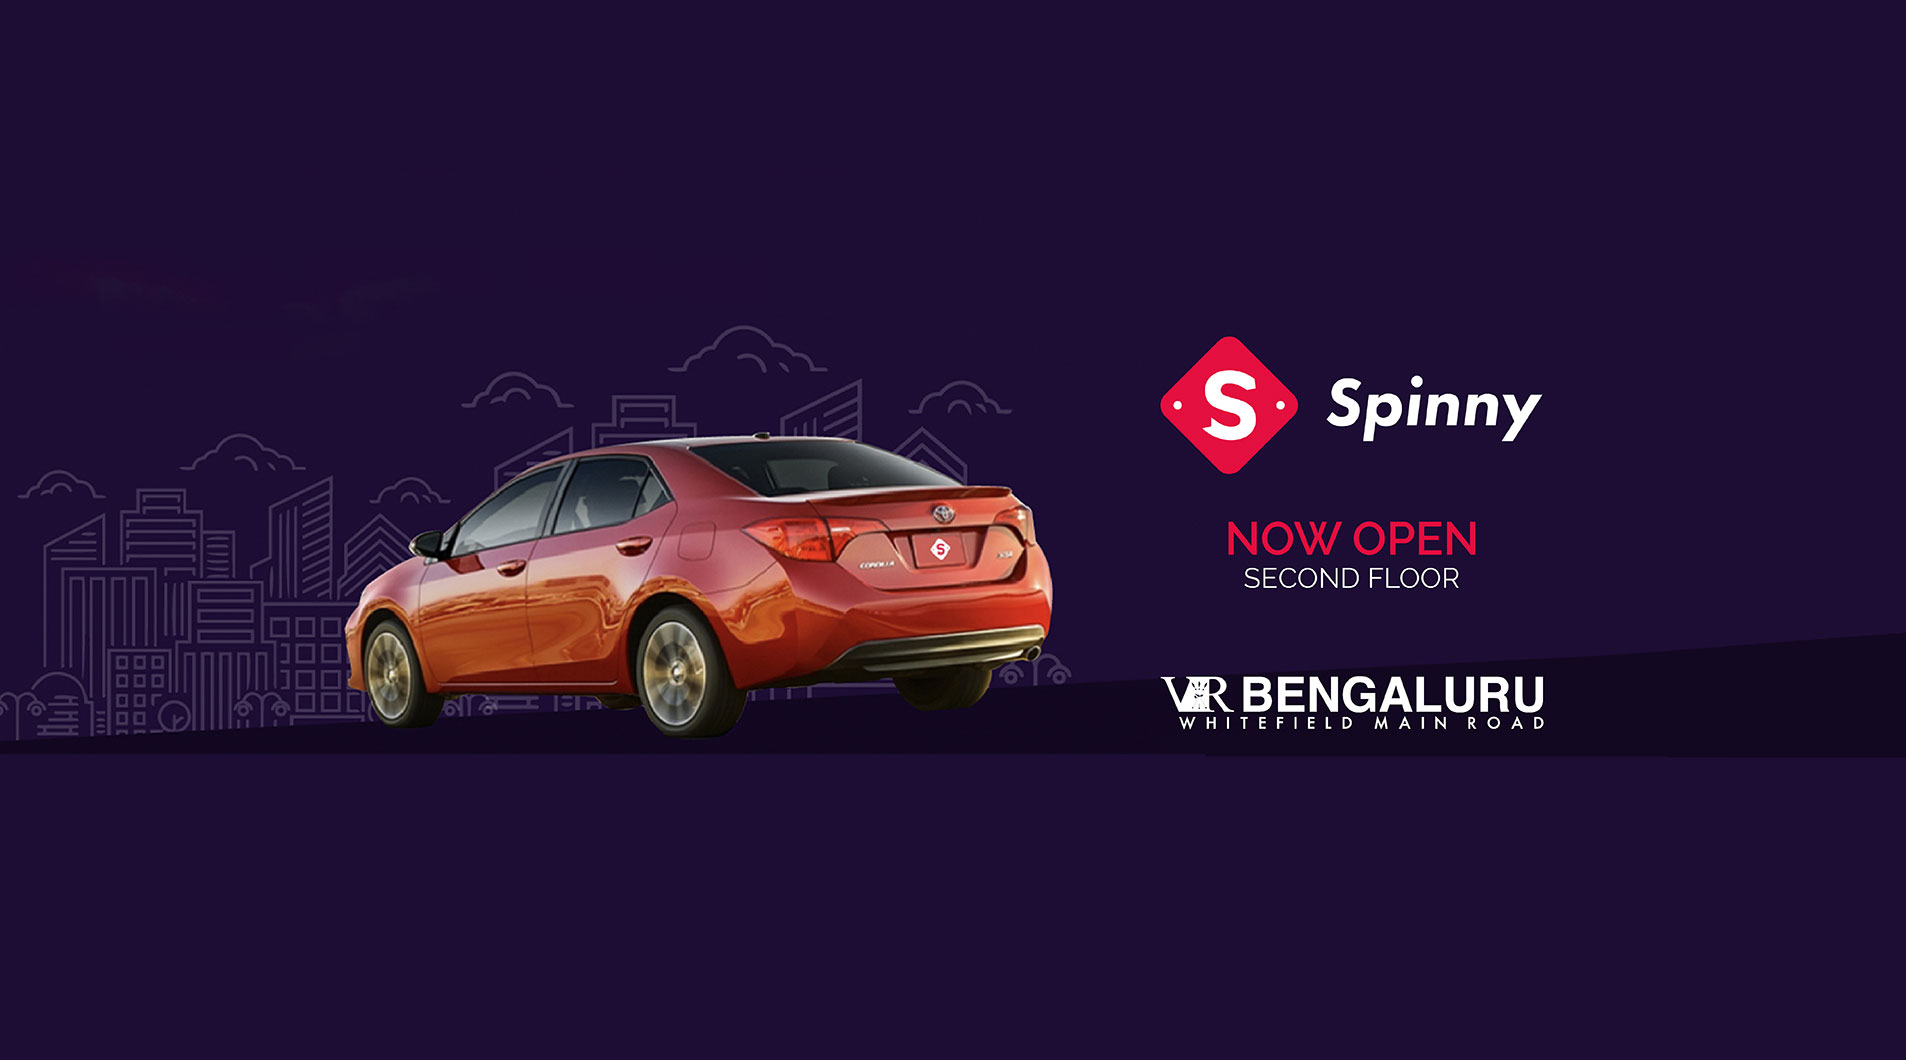 Spinny - Now Open